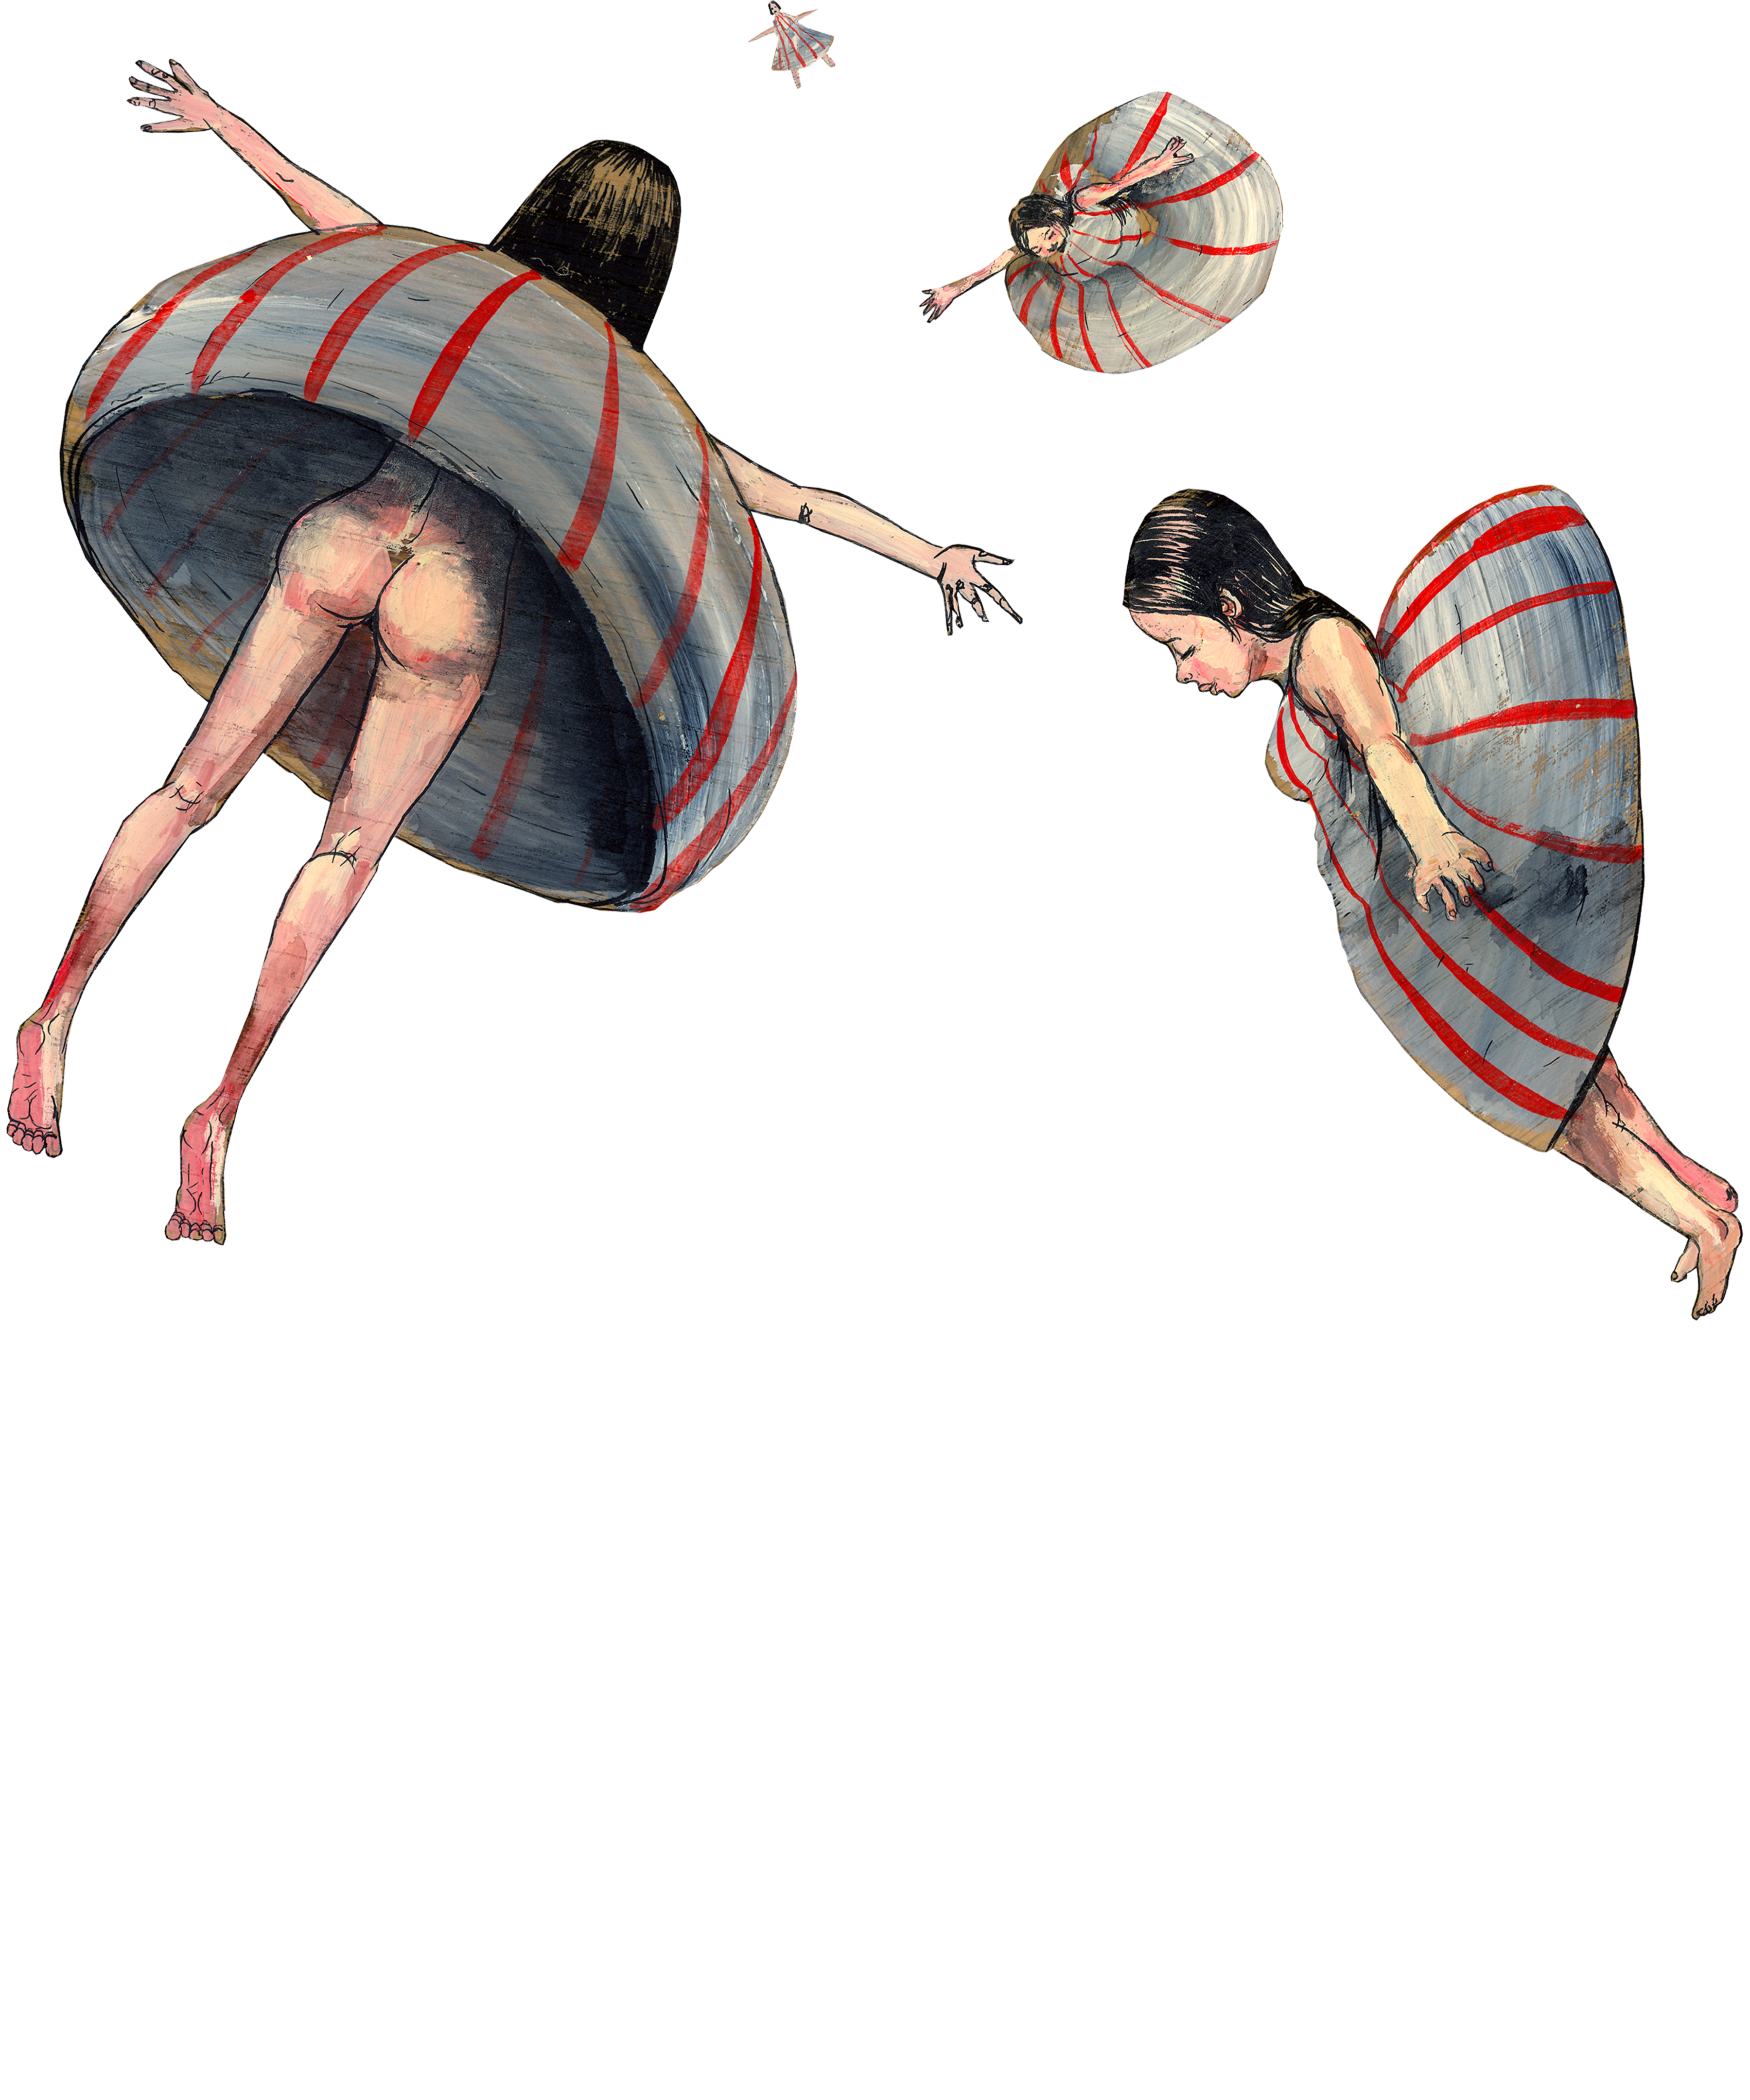 Person falling png. Free transparent images pngio